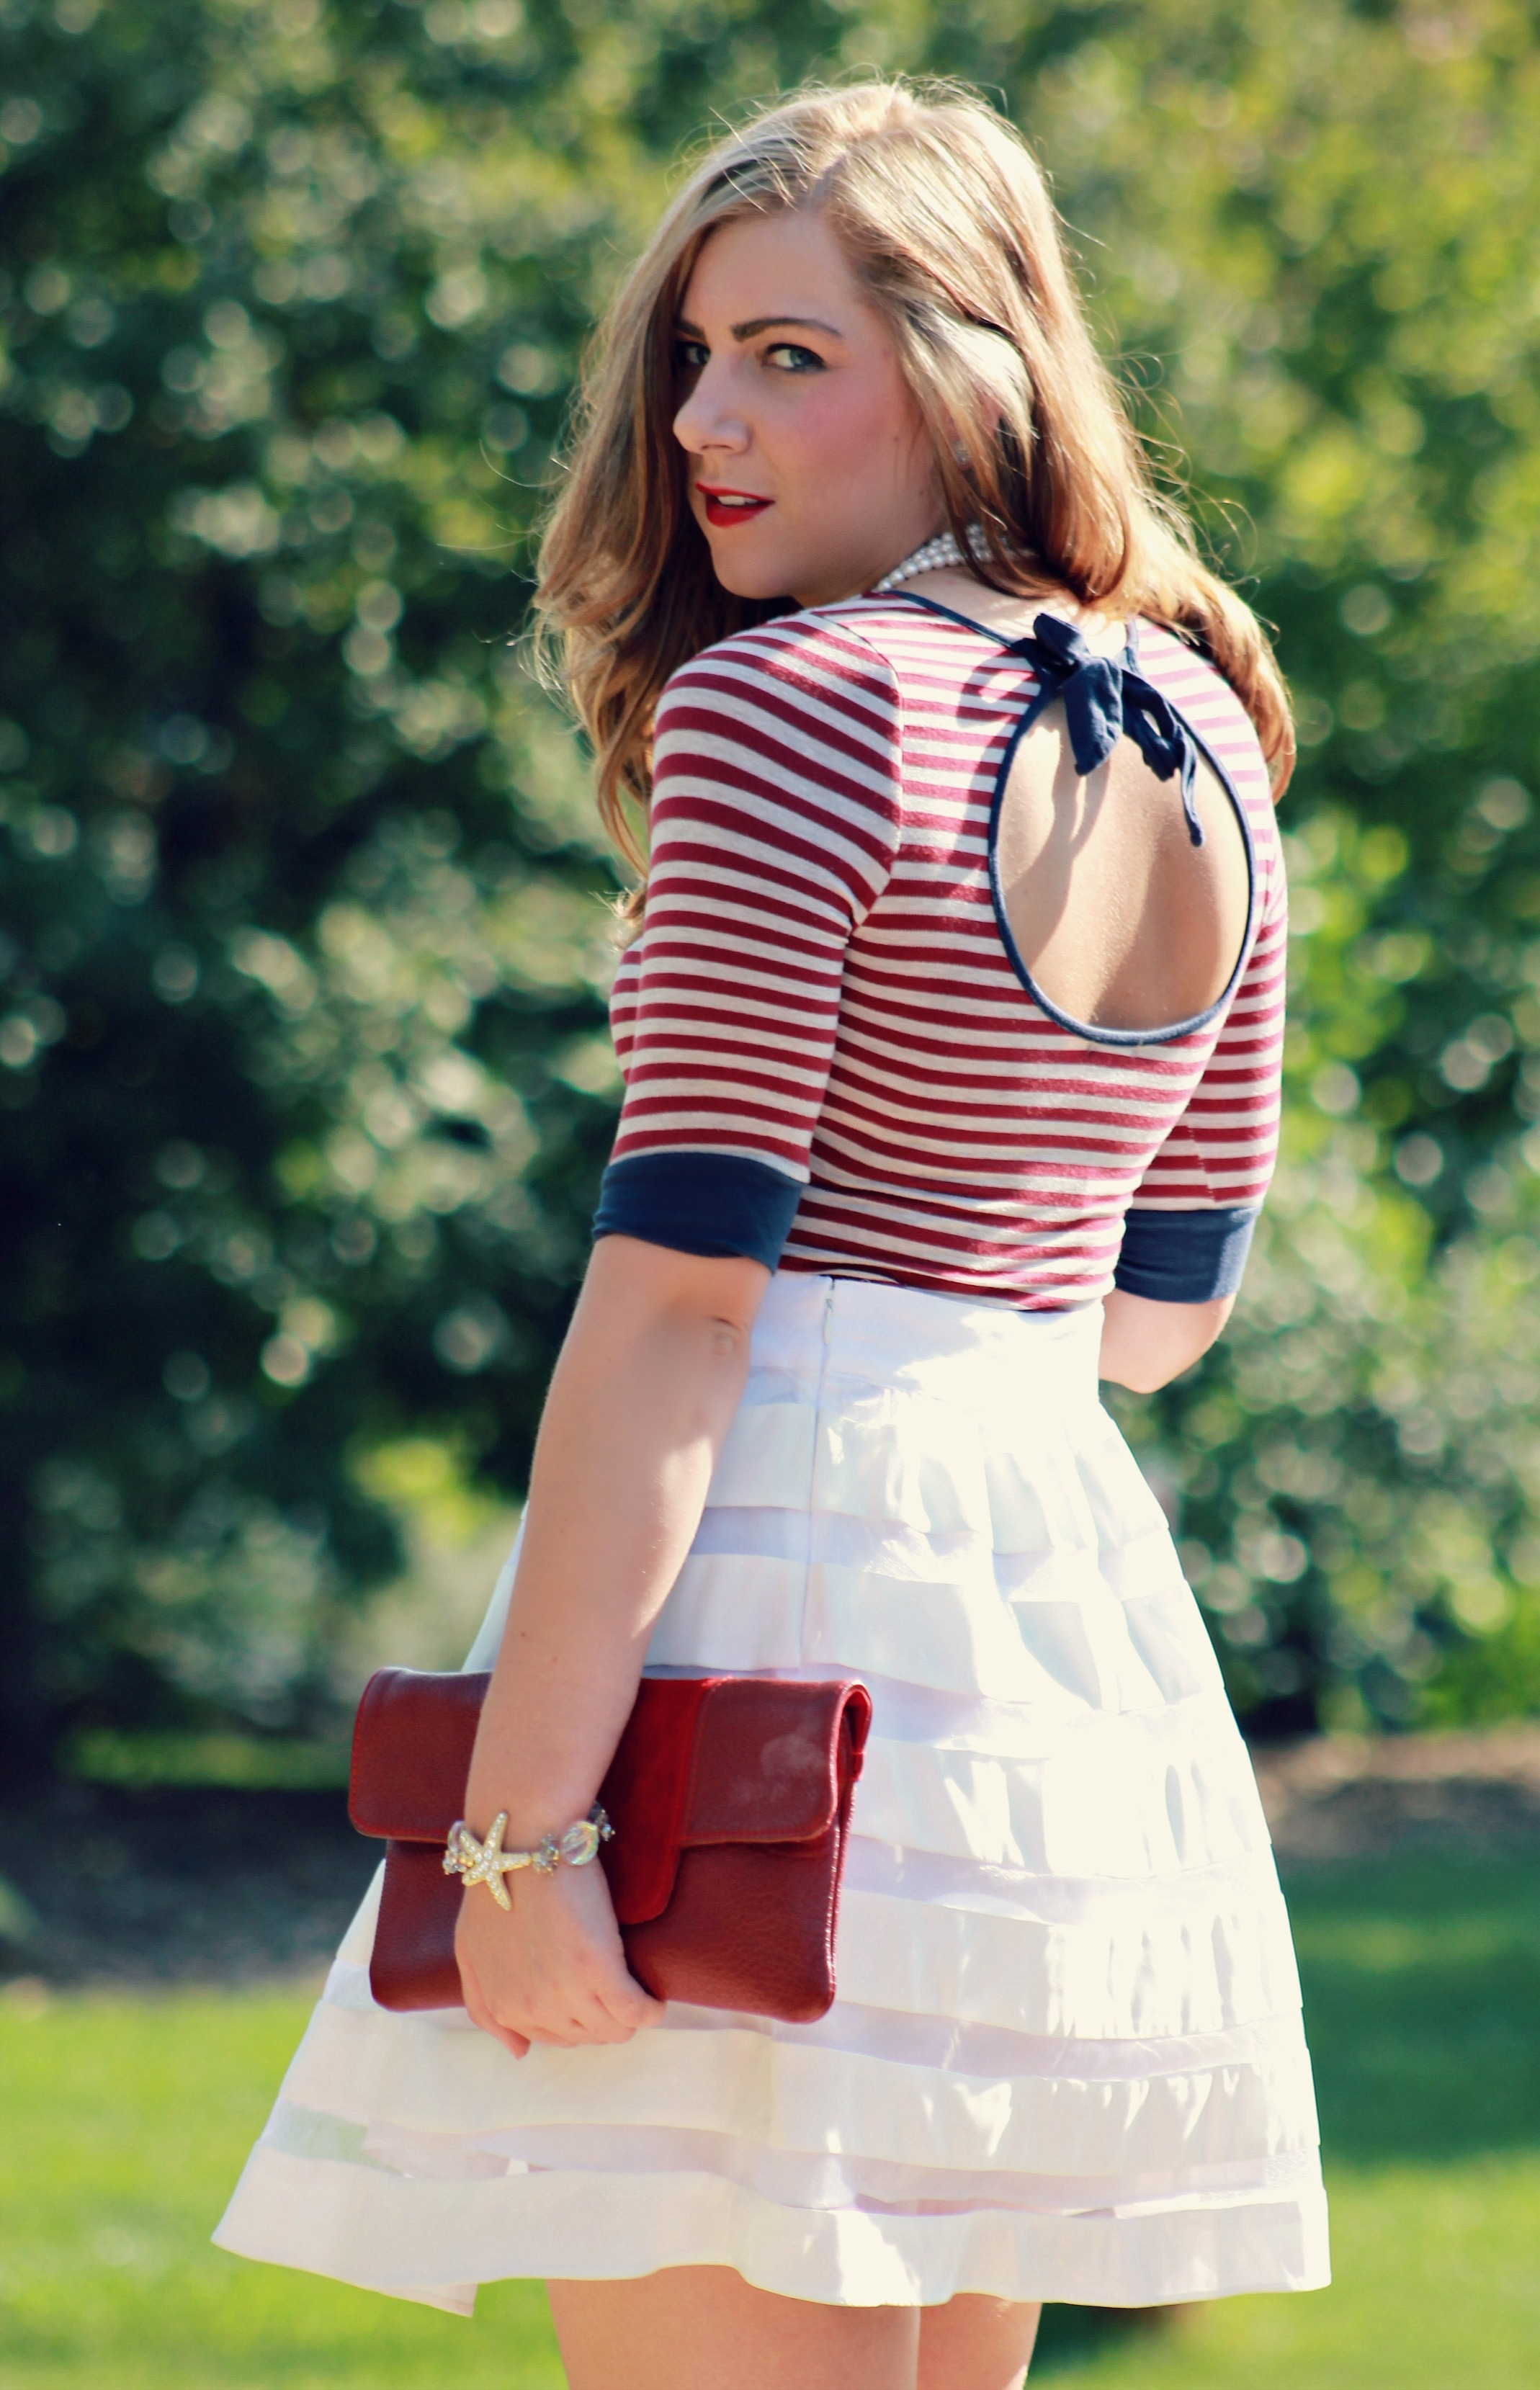 4th Of July Skirt Amp Top Pictures Photos And Images For